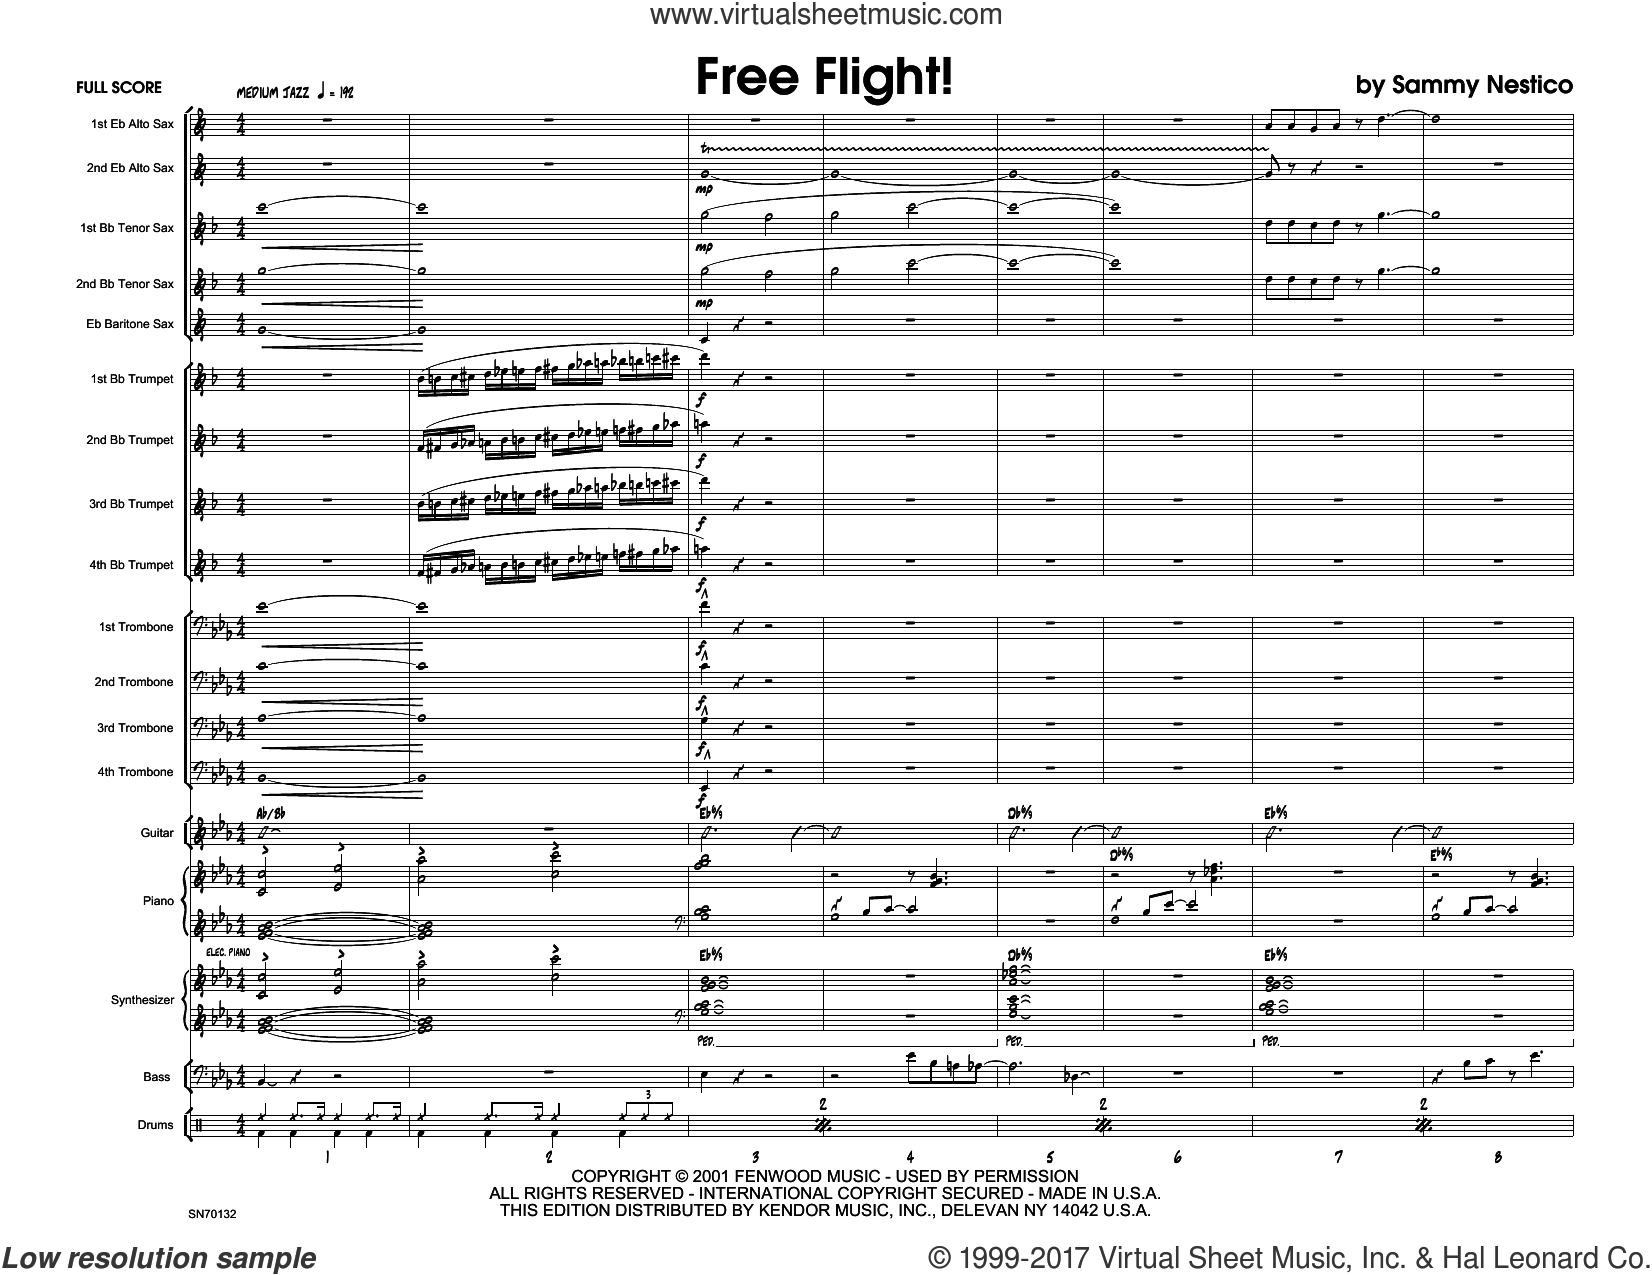 Free Flight! (COMPLETE) sheet music for jazz band by Sammy Nestico, intermediate skill level